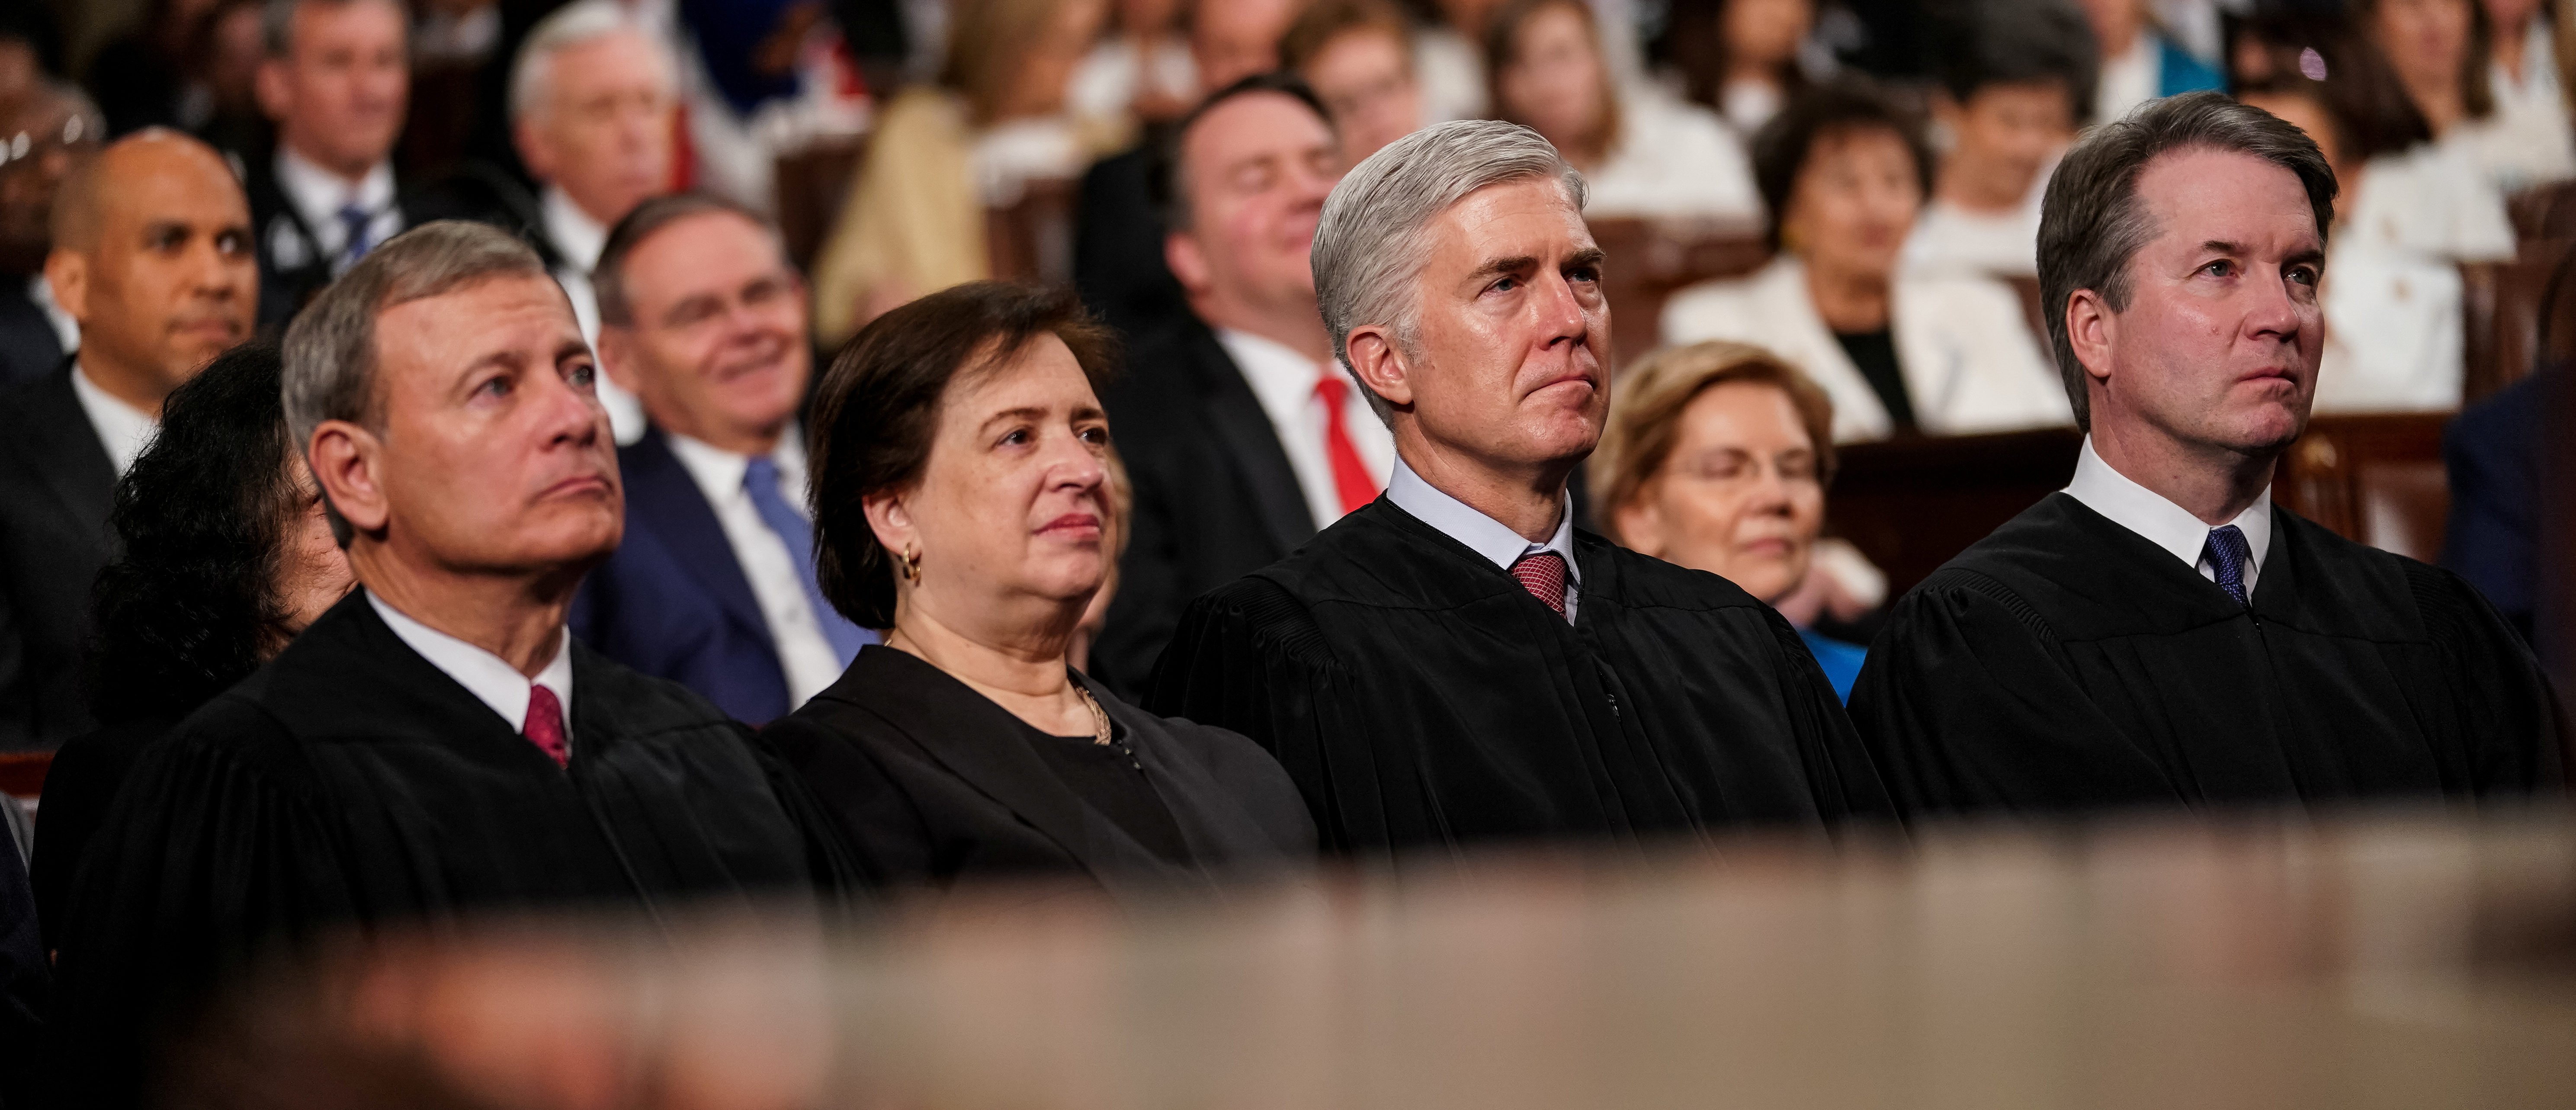 Supreme Court Justices John Roberts, Elena Kagan, Neil Gorsuch and Brett Kavanaugh during the State of the Union address at the Capitol in Washington, DC on February 5, 2019. Doug Mills/Pool via REUTERS.